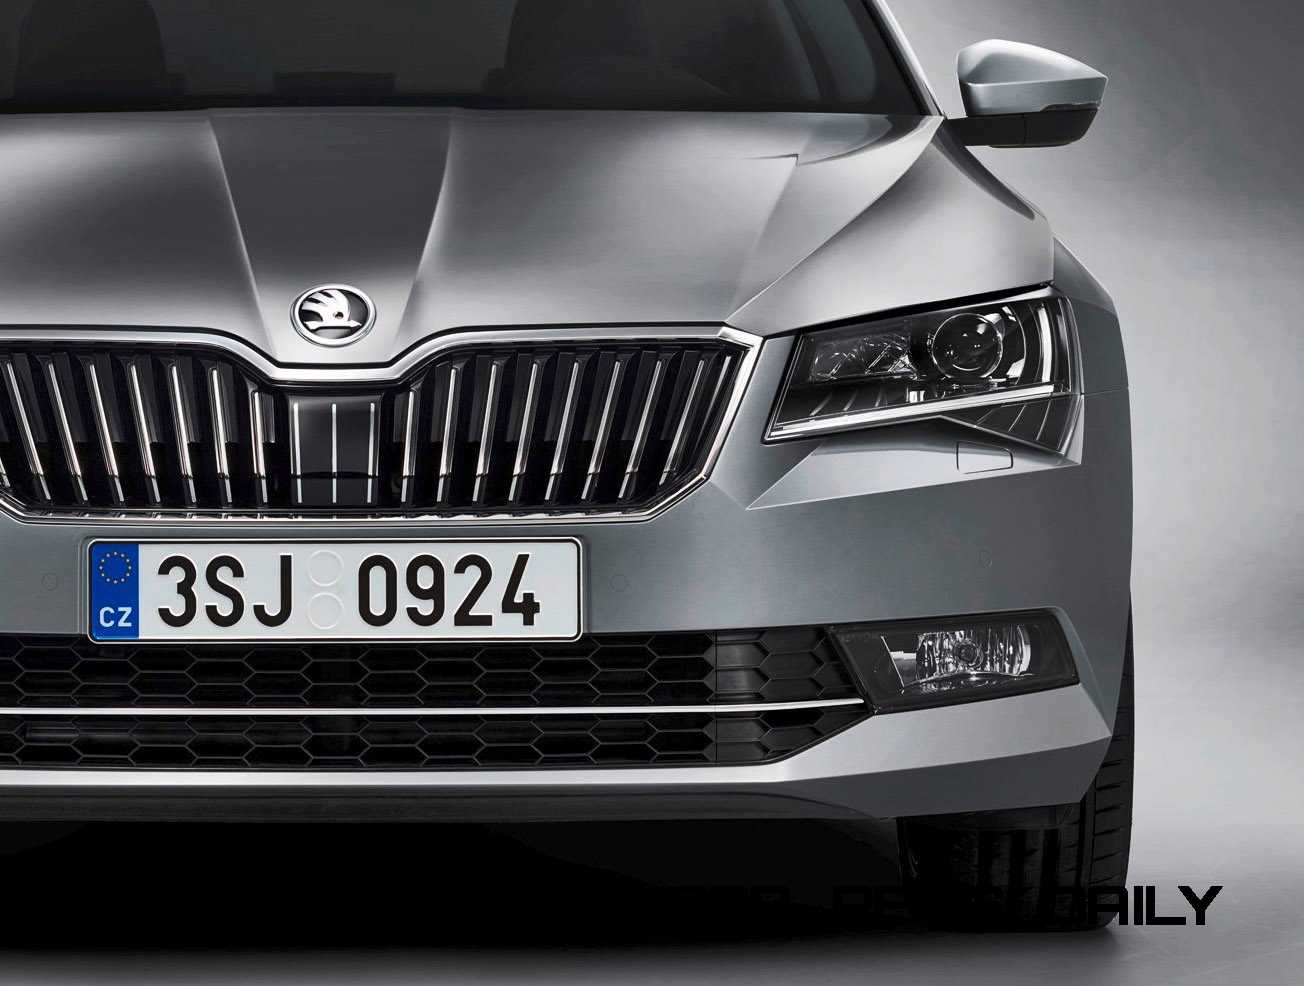 skoda_superb_front_p2_fin copy